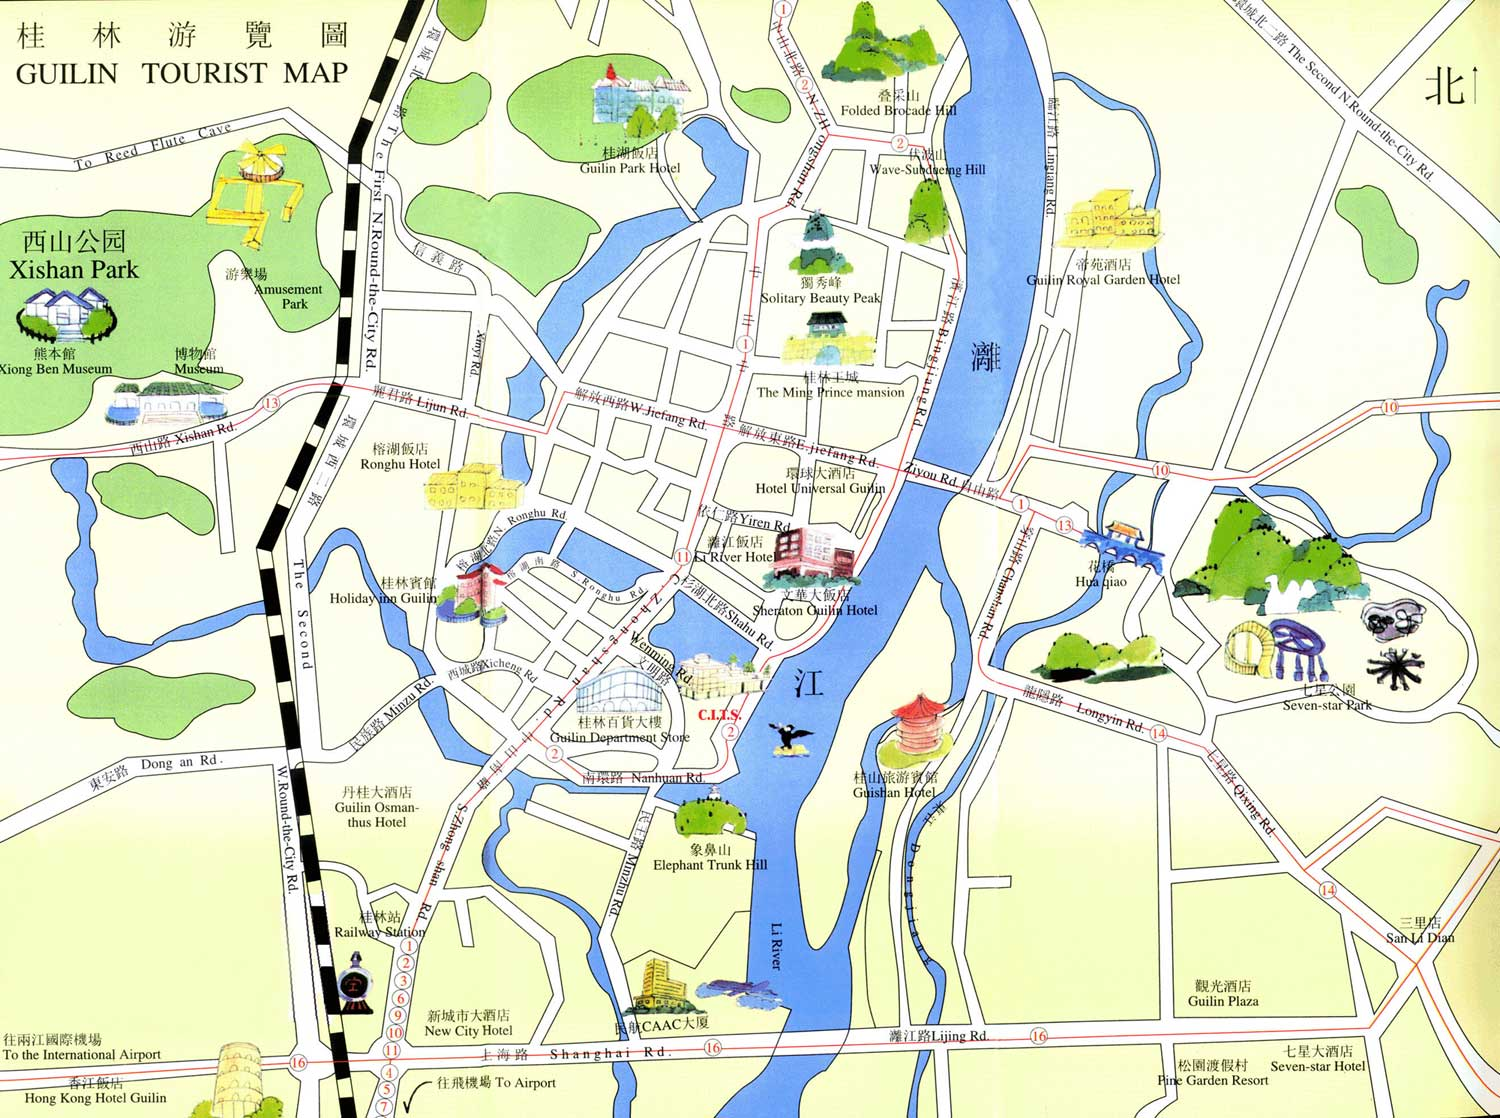 Guilin Tourist Map